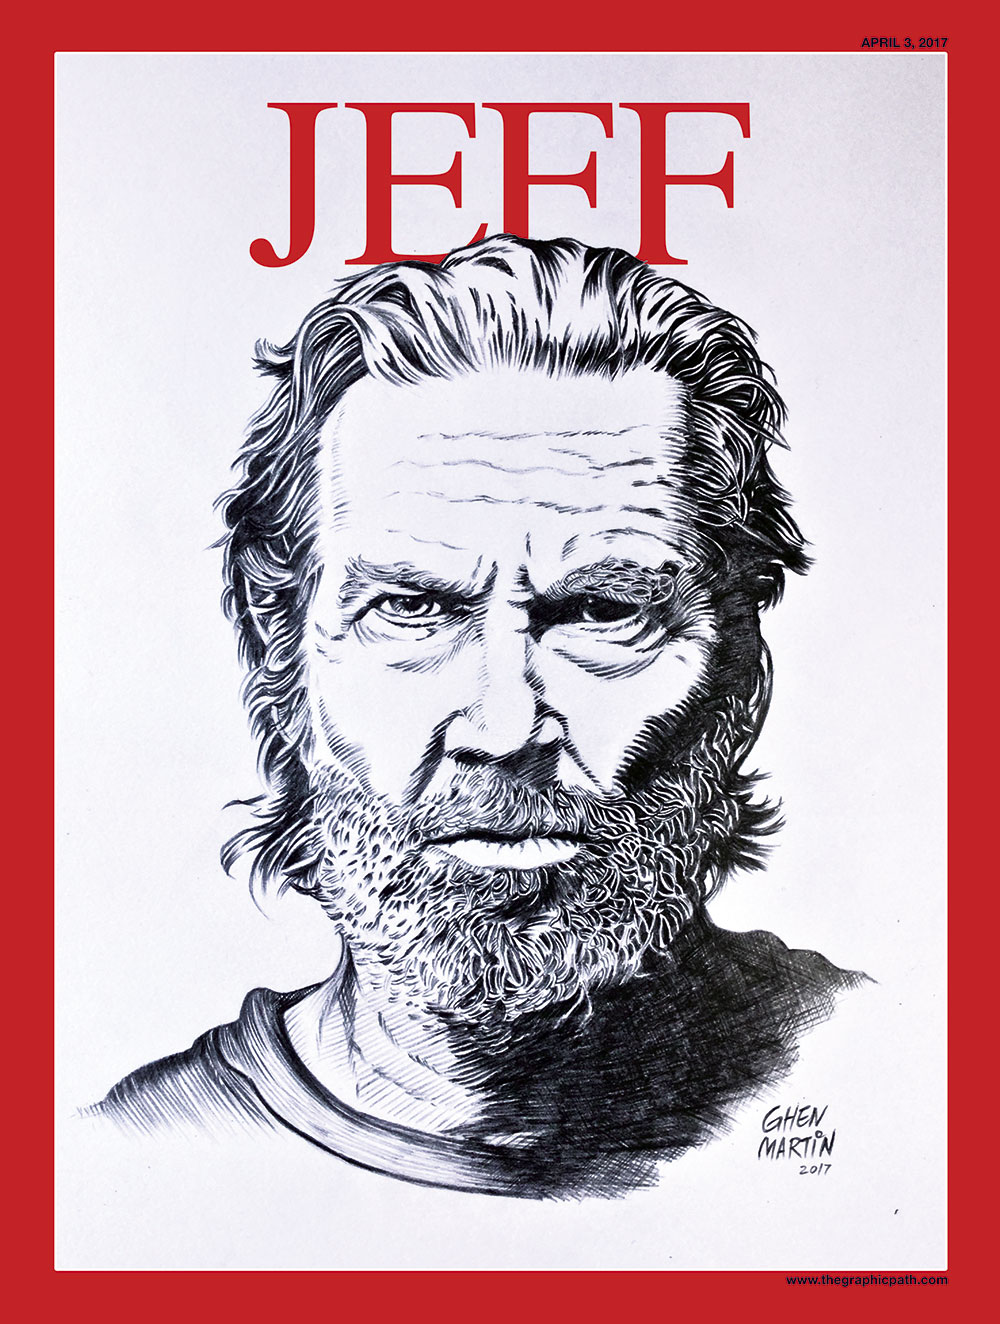 Jeff Bridges Cover Portrait by Jose Martin